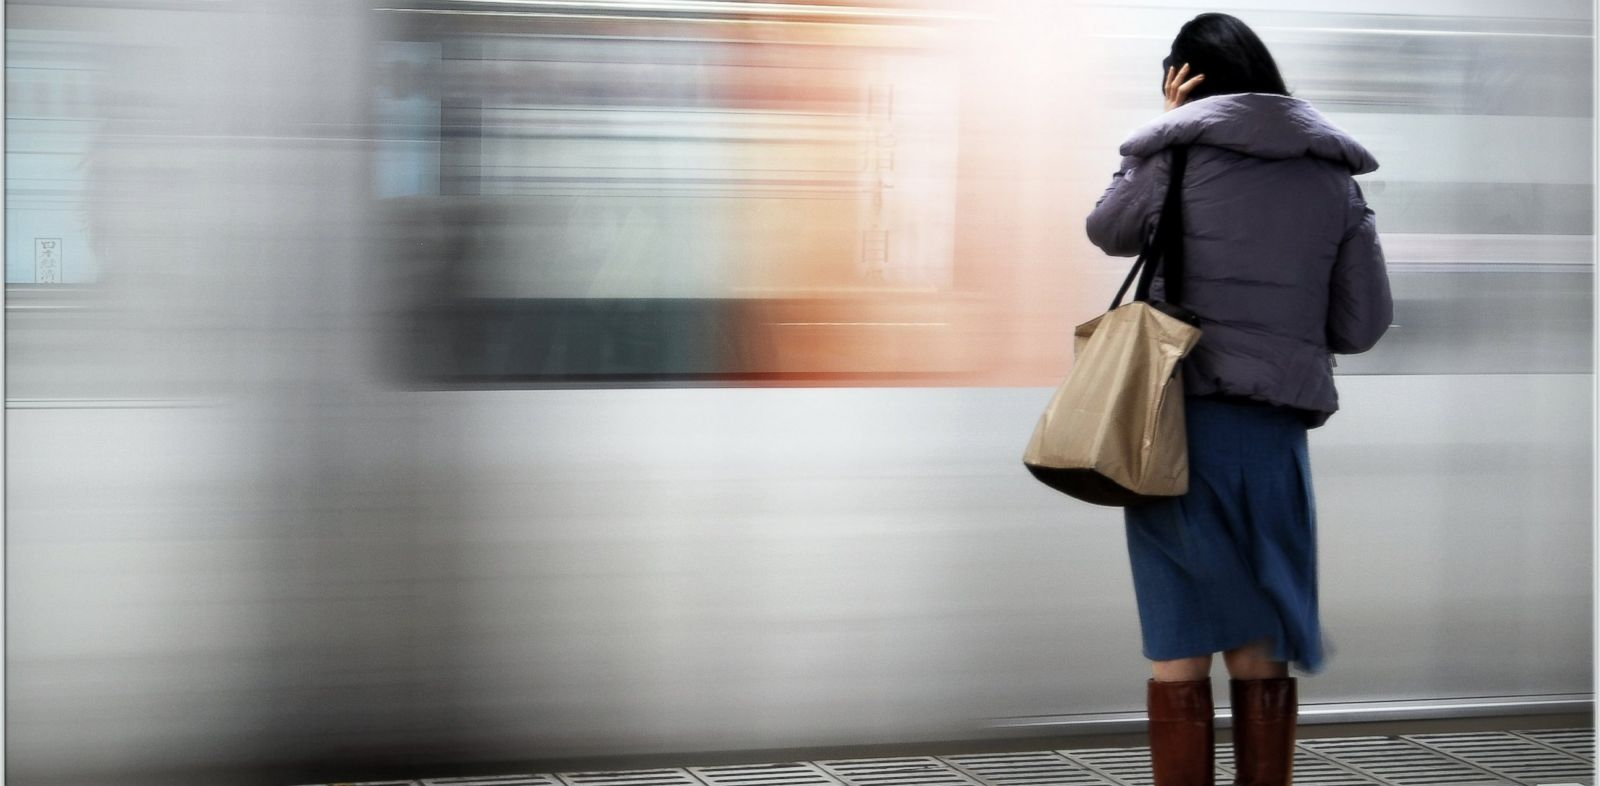 PHOTO: A woman waits for the subway.